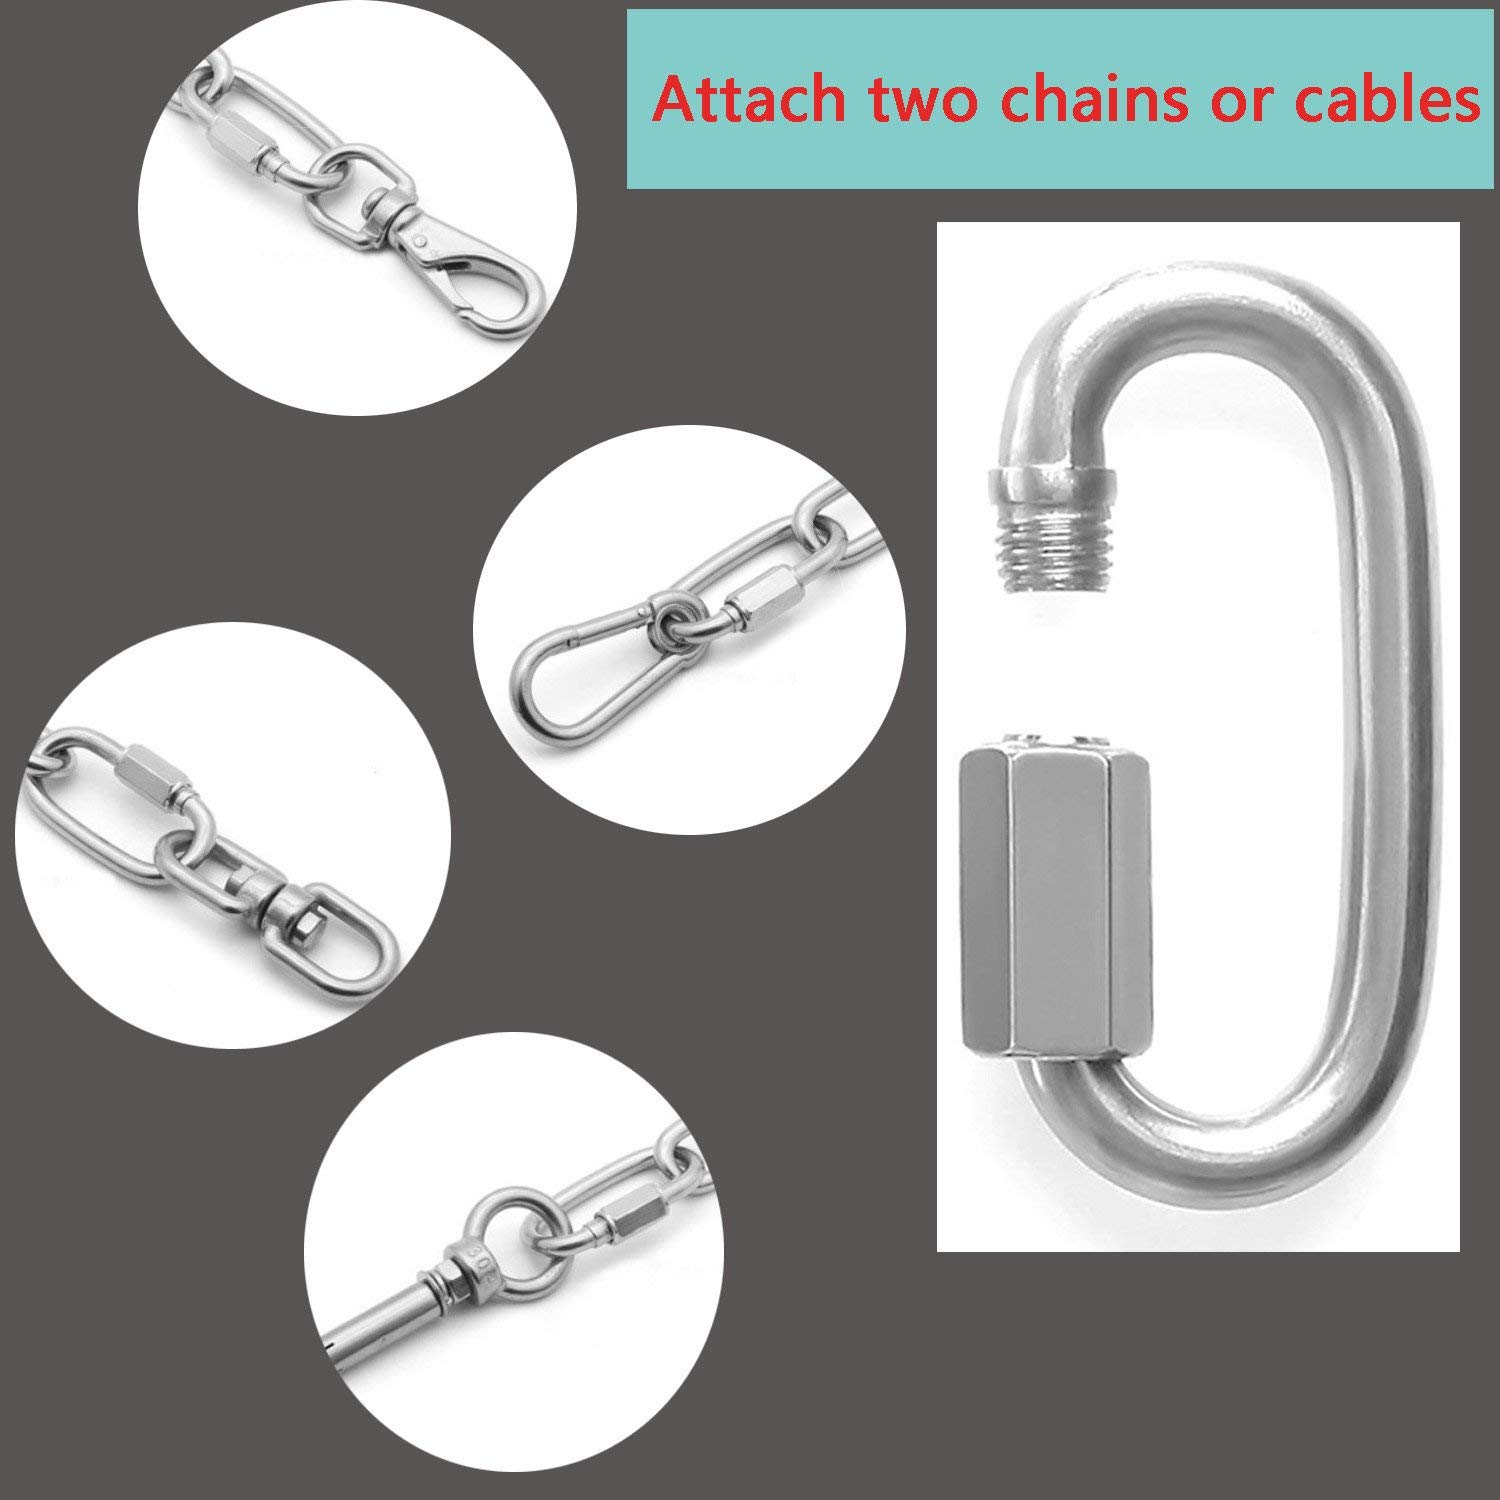 4pcs M8 Stainless Steel Quick Link D Shape Chain Links Connector 5//16 Small Climbing Lock Carabiner